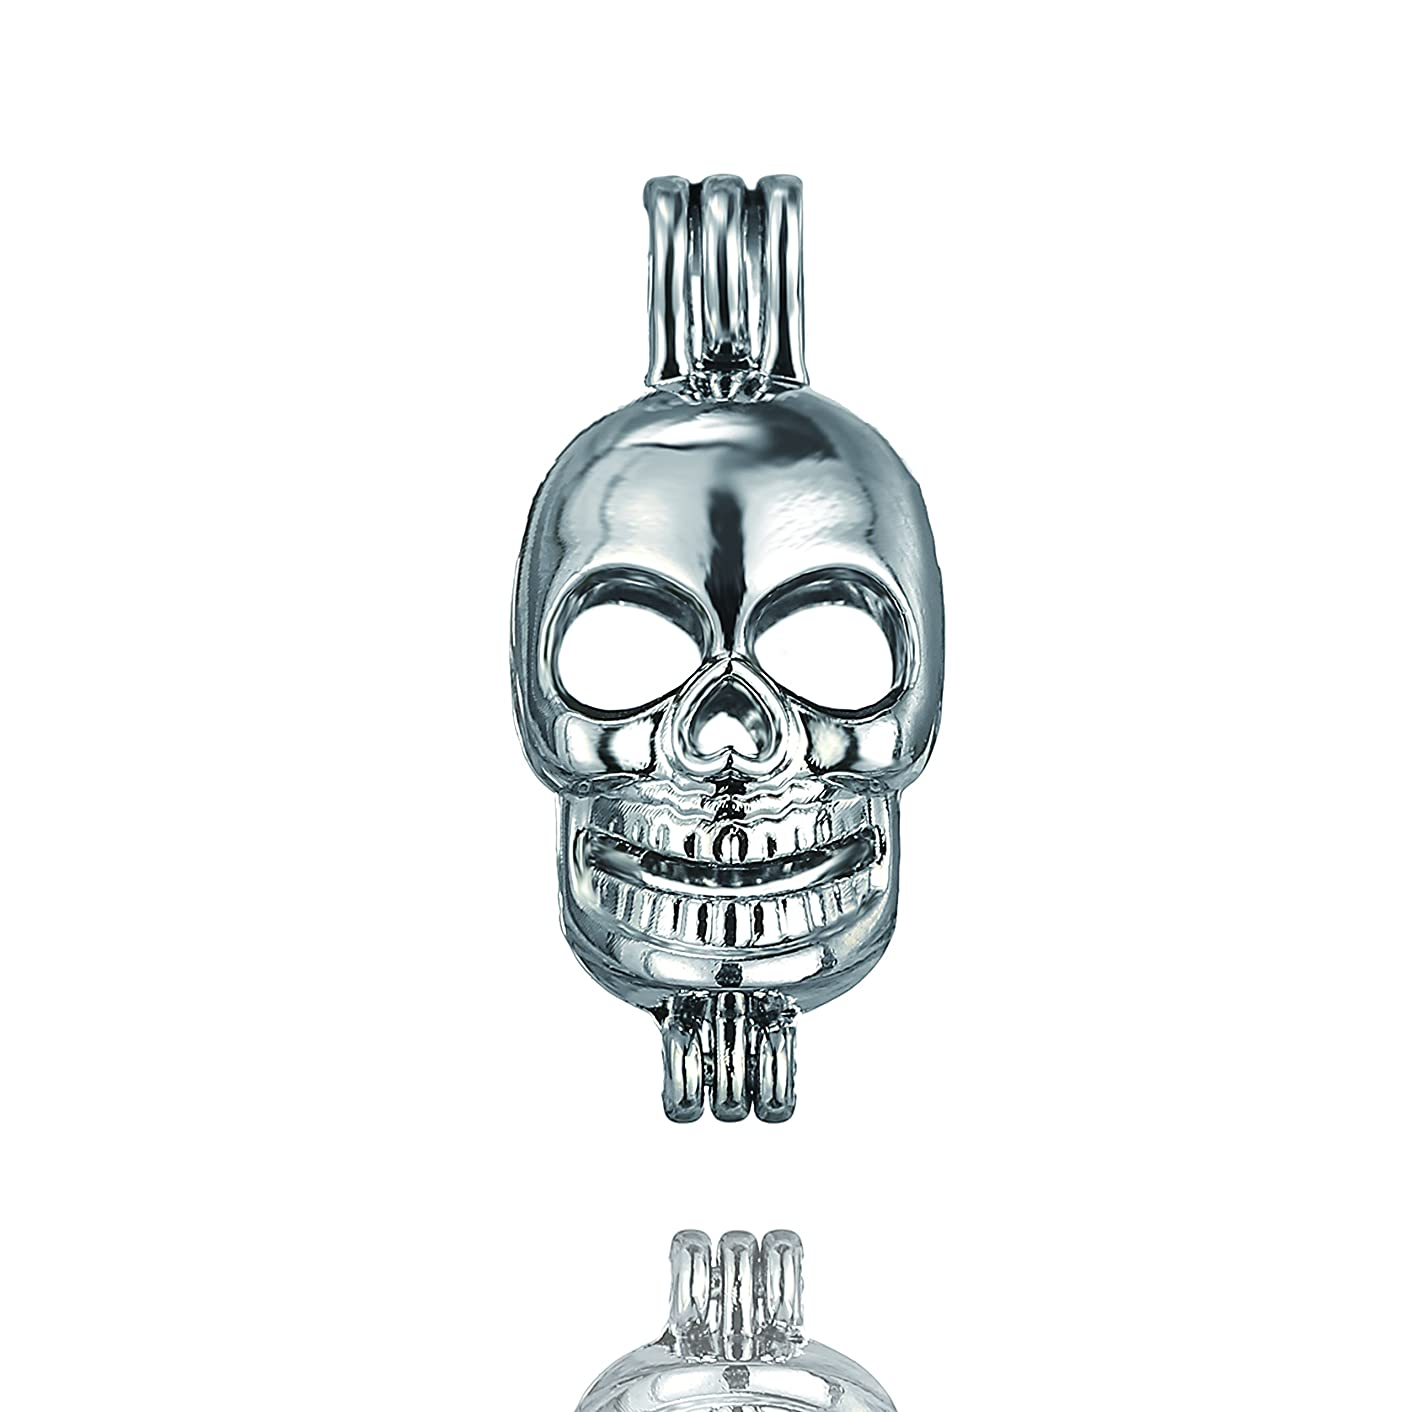 Fantasy 10pcs Halloween Skull Pearl Bead Cage Pendant Essential Oil Scent Diffuser Pendant Necklace Jewelry Making Supplies (Skull)